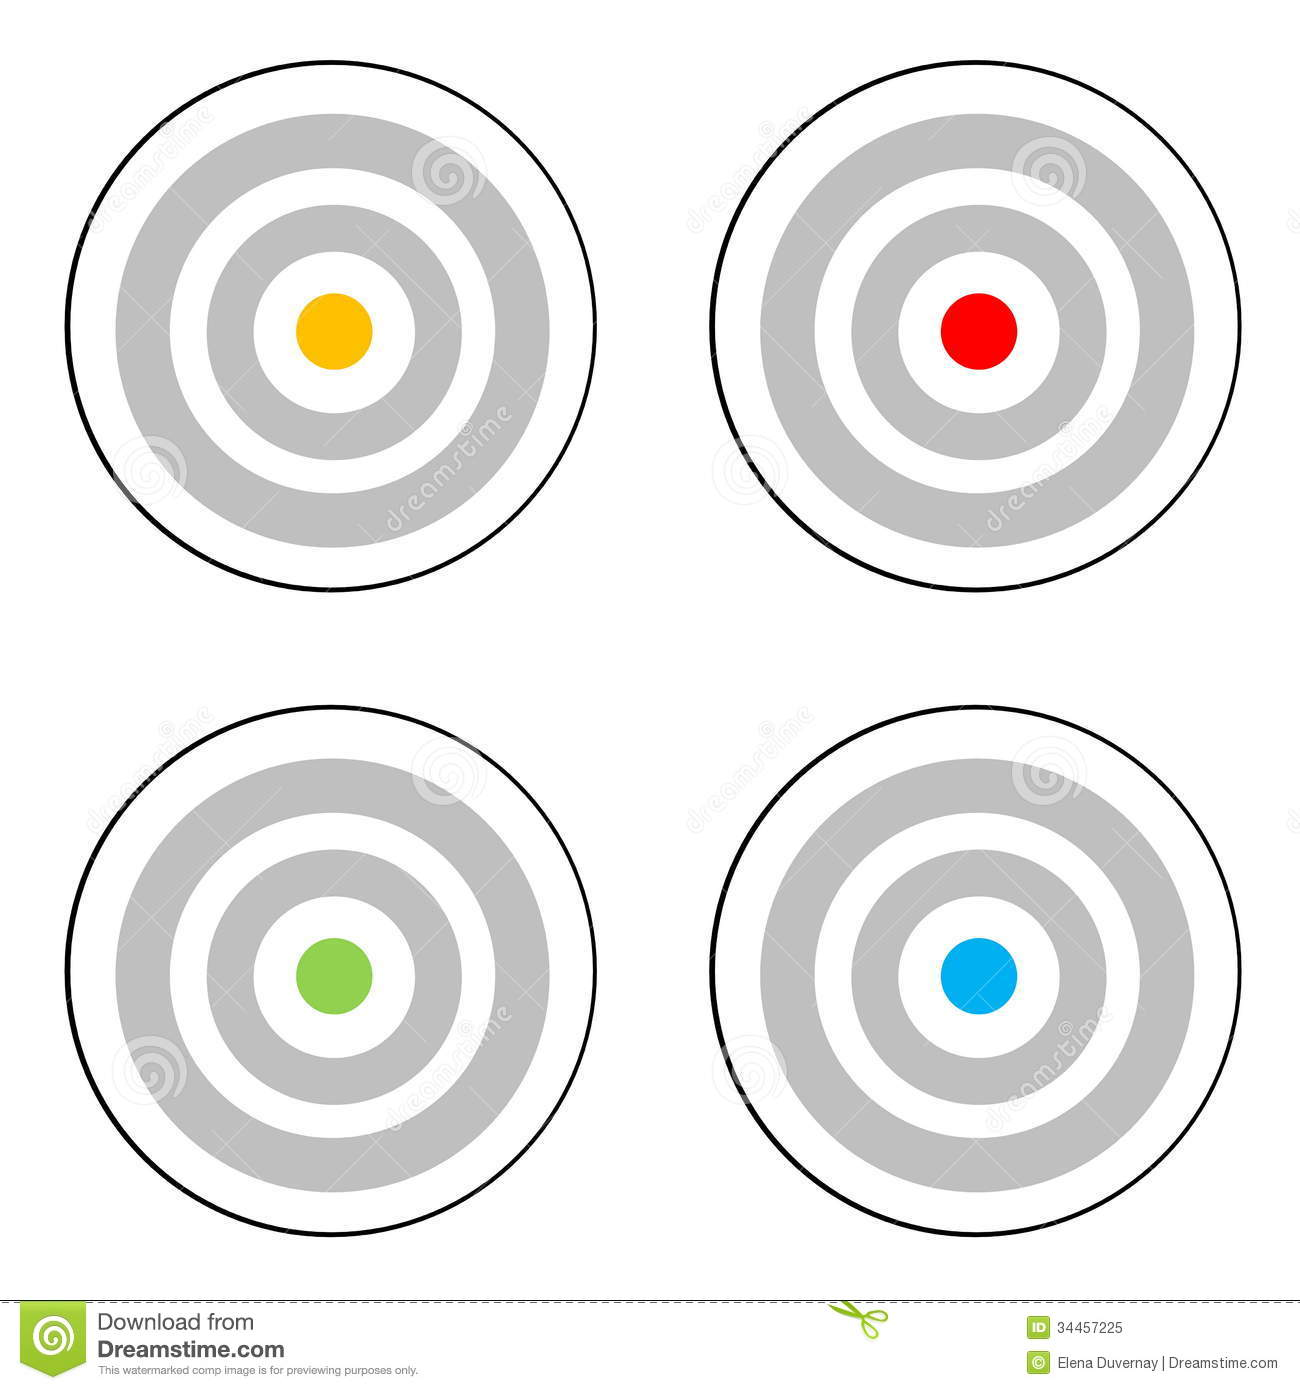 https://thumbs.dreamstime.com/z/four-targets-grey-target-yellow-red-green-blue-center-white-background-34457225.jpg